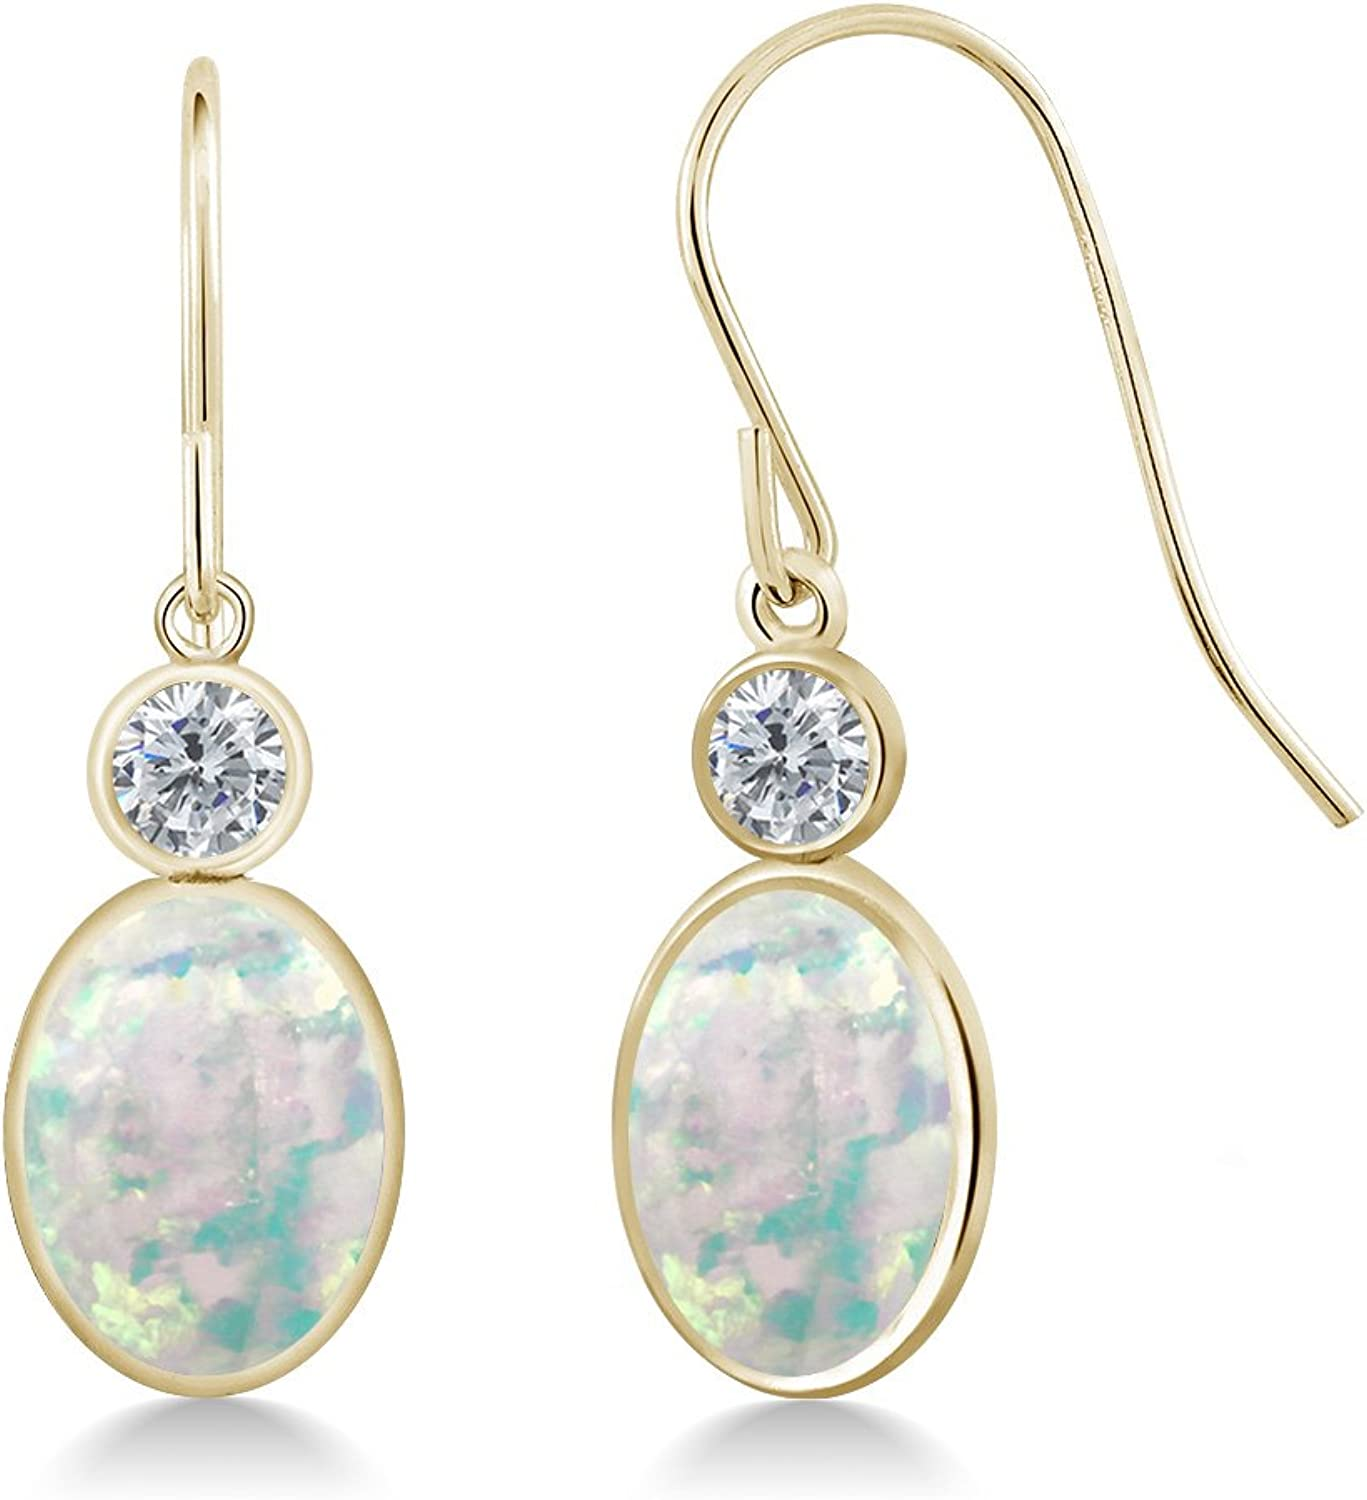 2.30 Ct Oval Cabochon White Simulated Opal G H Diamond 14K Yellow gold Earrings